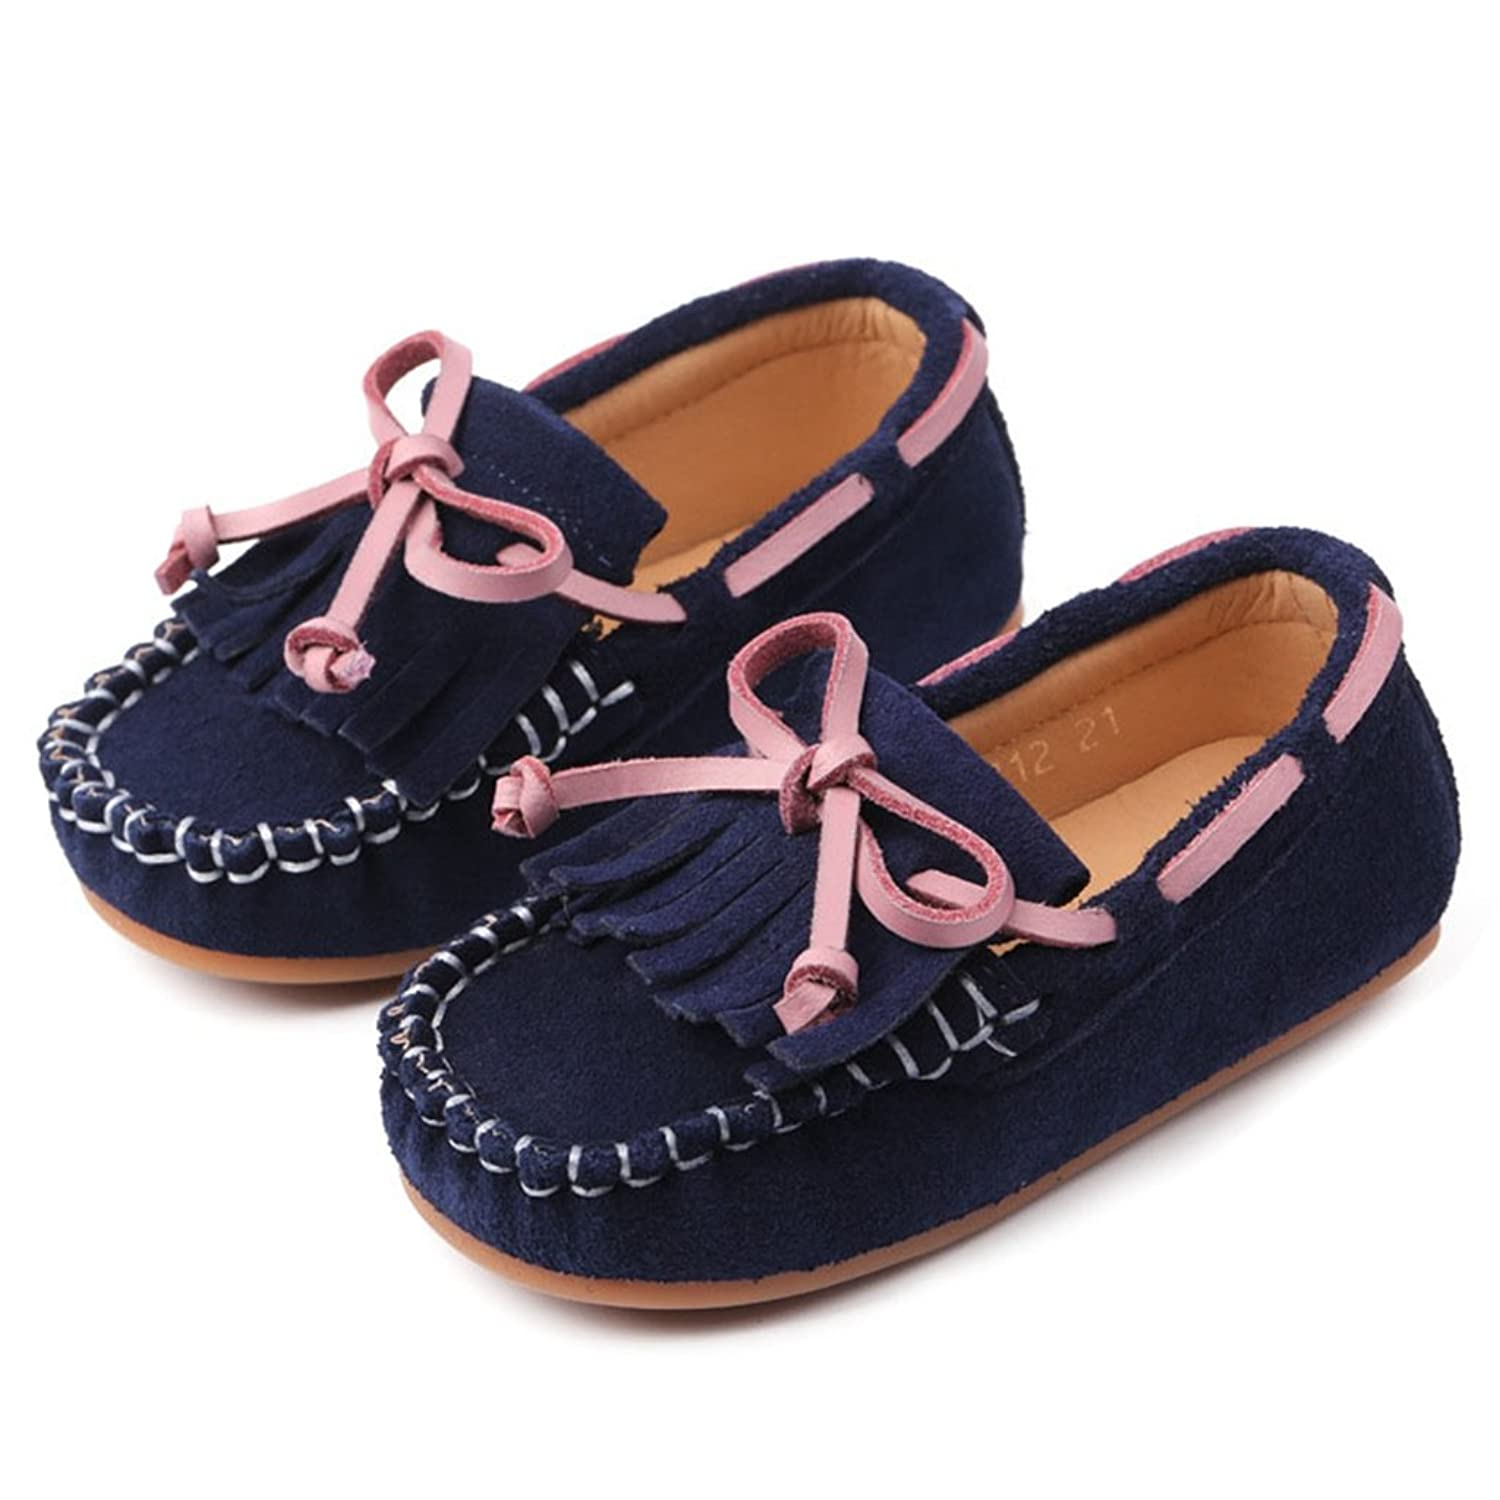 faaf429d6268 GIY Slip-On Flat Oxford Shoes For Toddler Kids Boys Girls Slip-On Casual